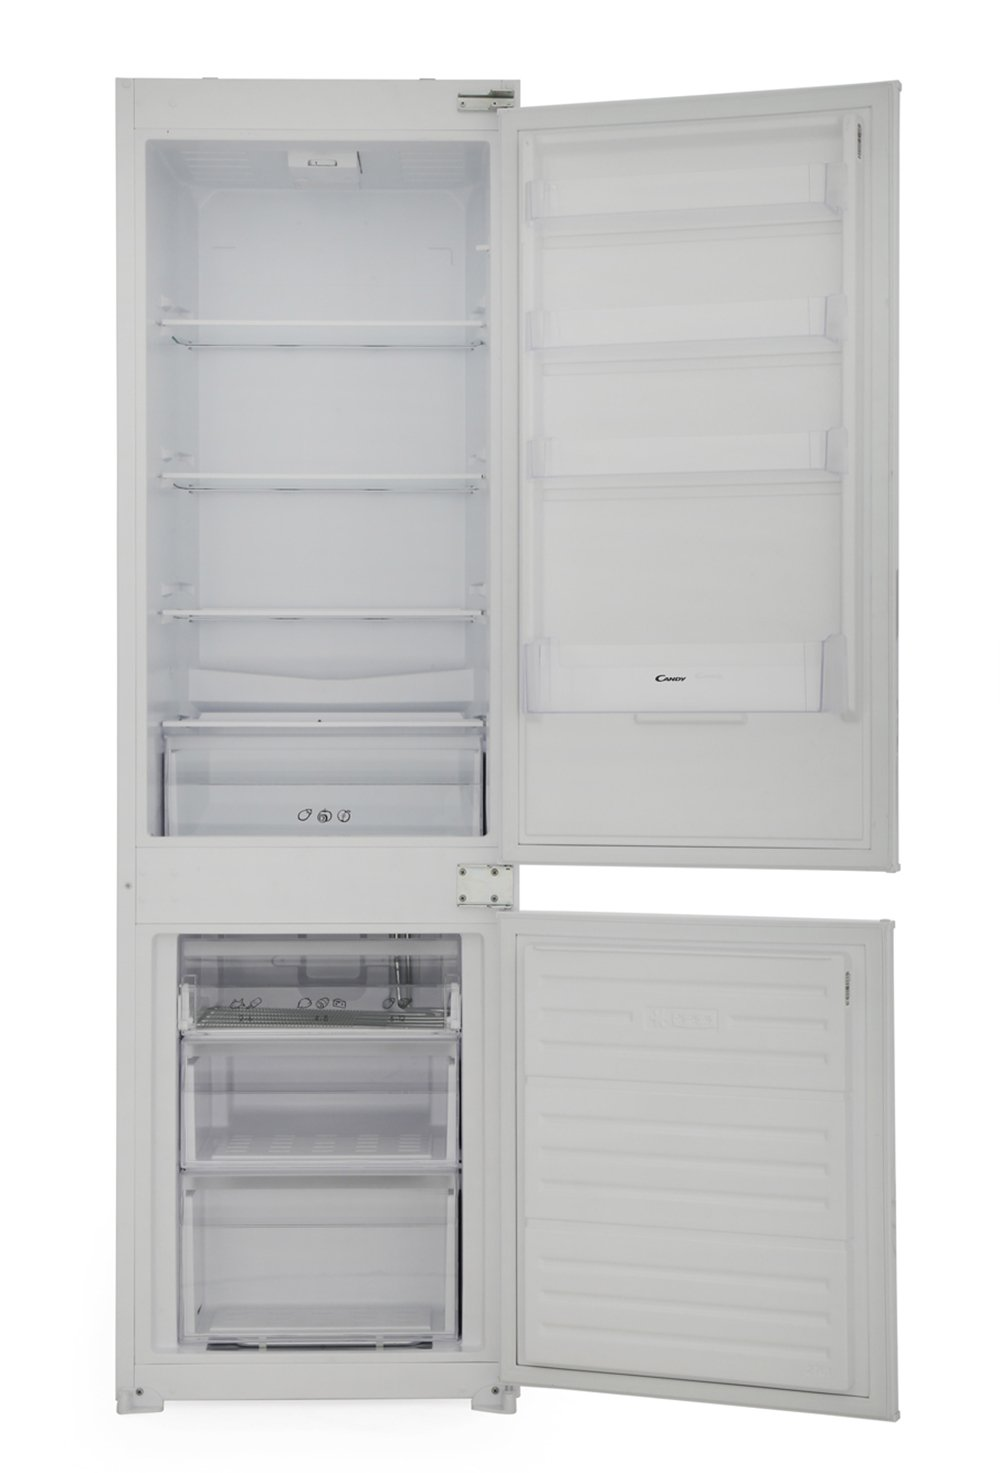 Candy BCBS172TK Static Integrated Fridge Freezer